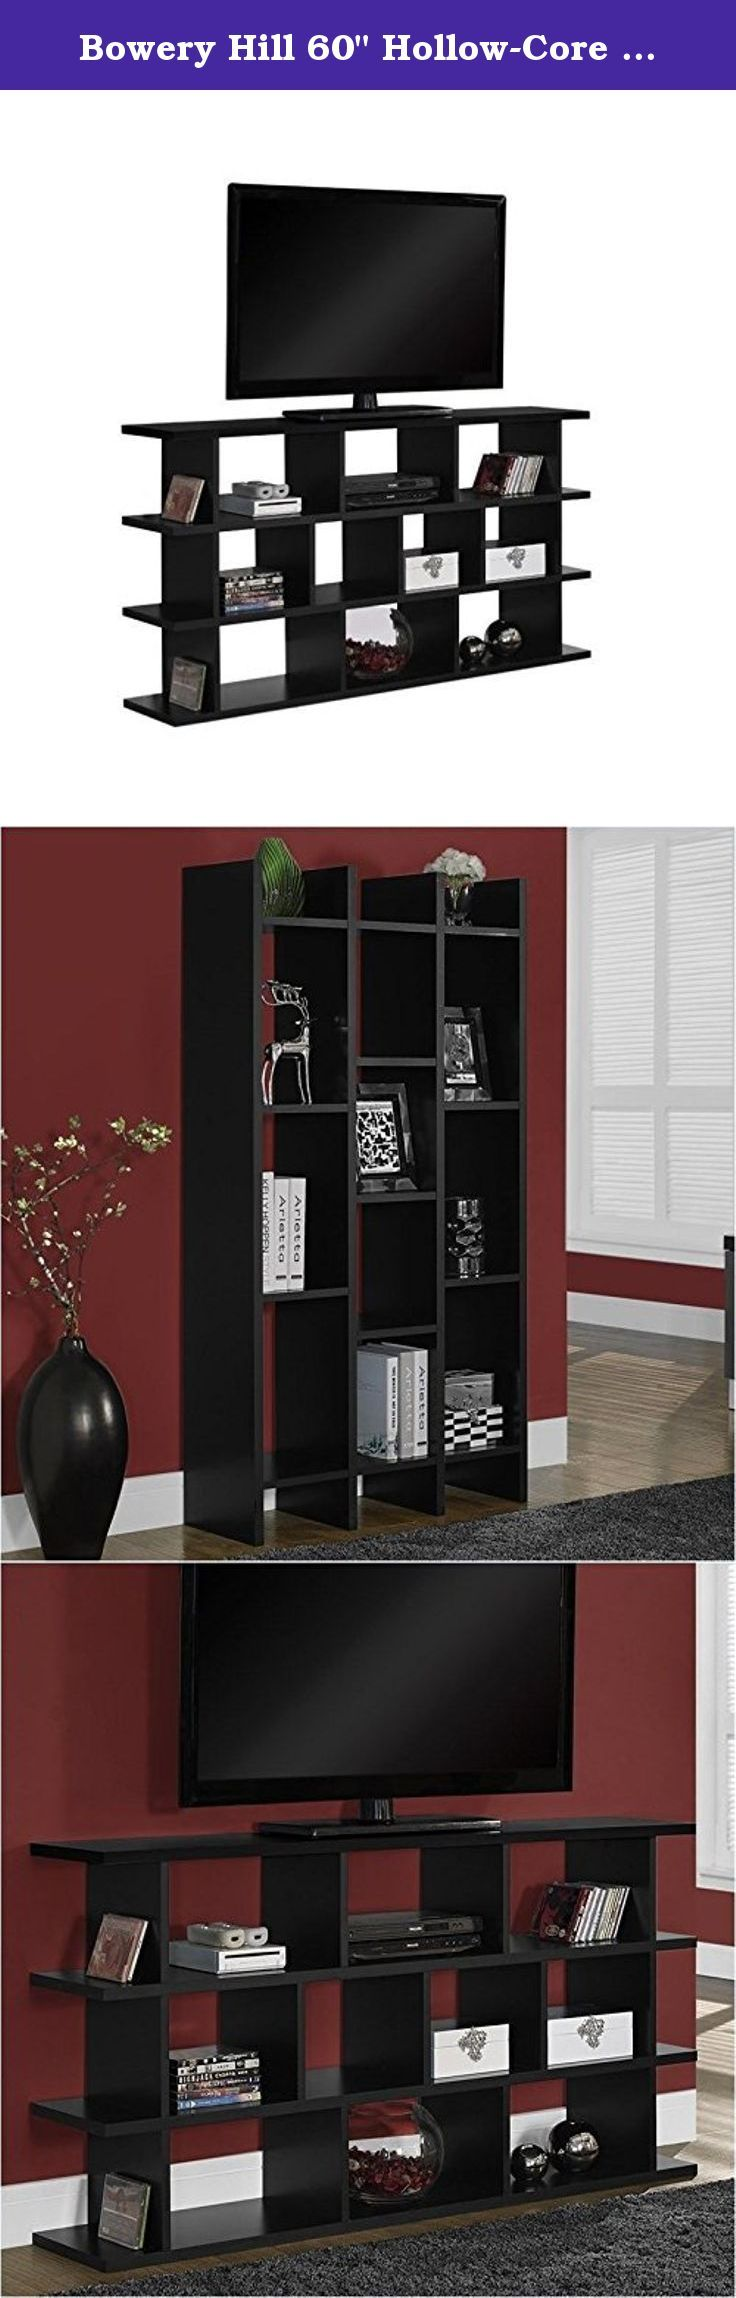 """Bowery Hill 60"""" Hollow-Core Horizontal-Vertical TV Stand in Black. This bold contemporary """"shift"""" etagere / TV console will add a stylish storage solution to your living room, office, or hallway. This versatile piece that can be used upright as a bookshelf or on its side as a TV console is finished in a stylish black. Thick hollow-board side panels and clean lines complete this sleek look. Open shelves offers space for books, decorative items, or AV equipment. Features: Color: black;..."""